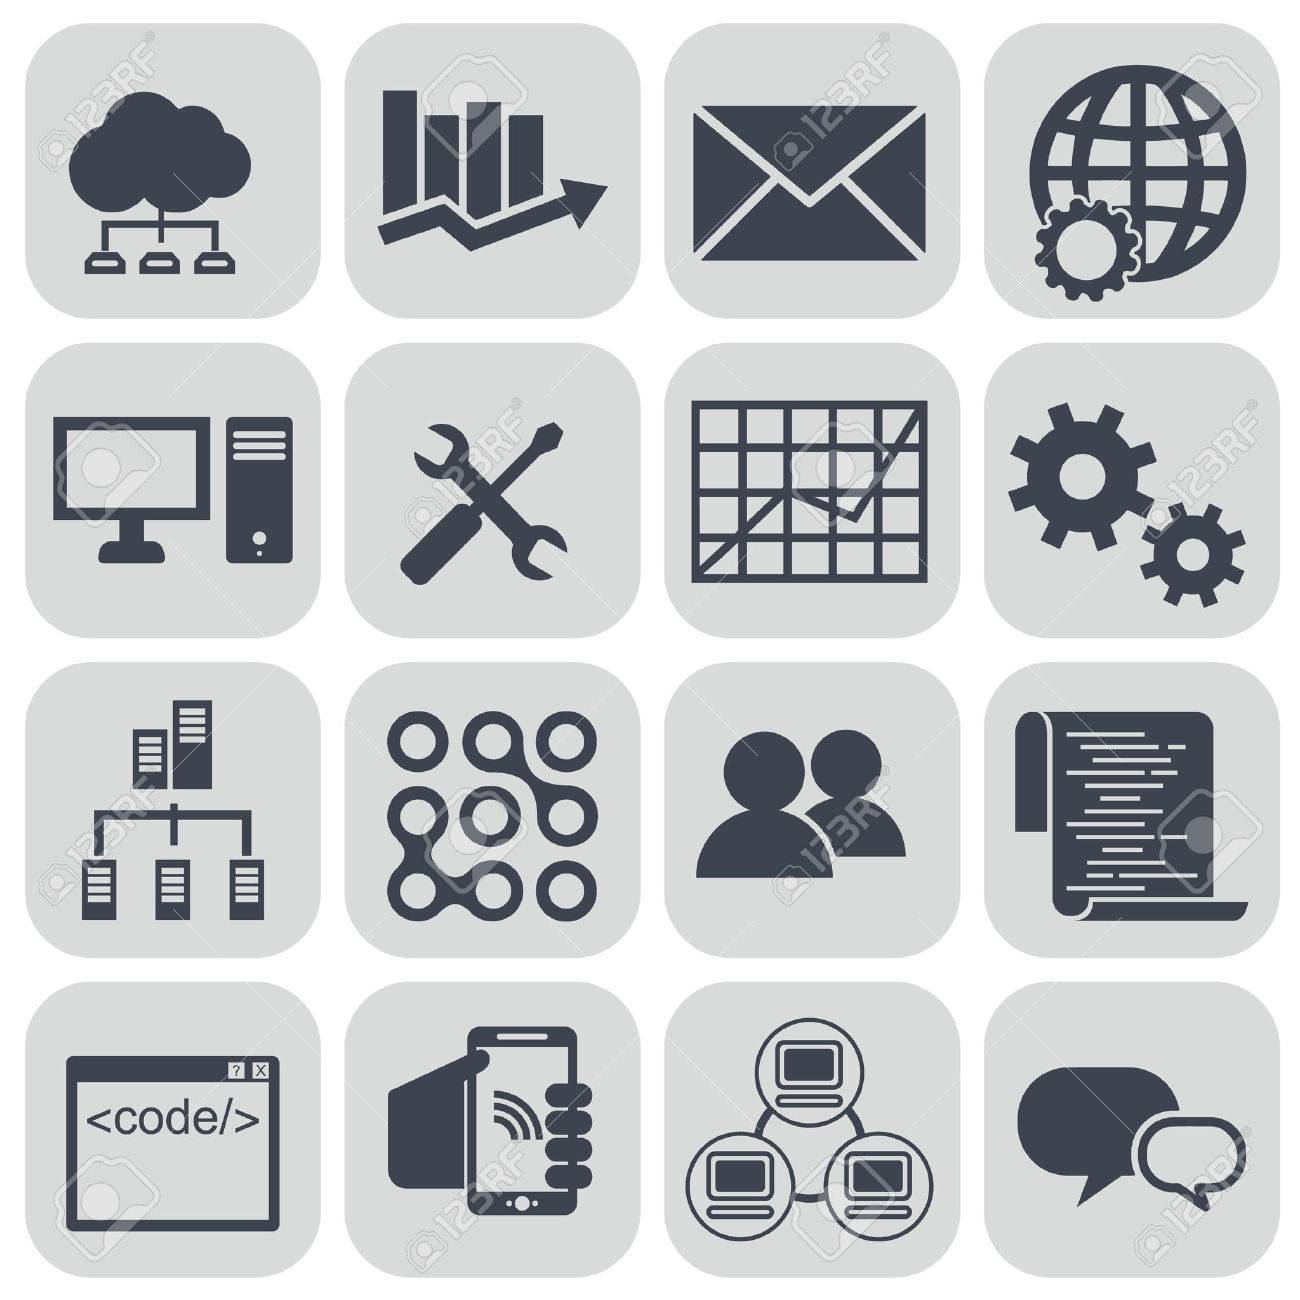 Big Data Icon Set Data Analytics Icon Set Cloud Computing Icon